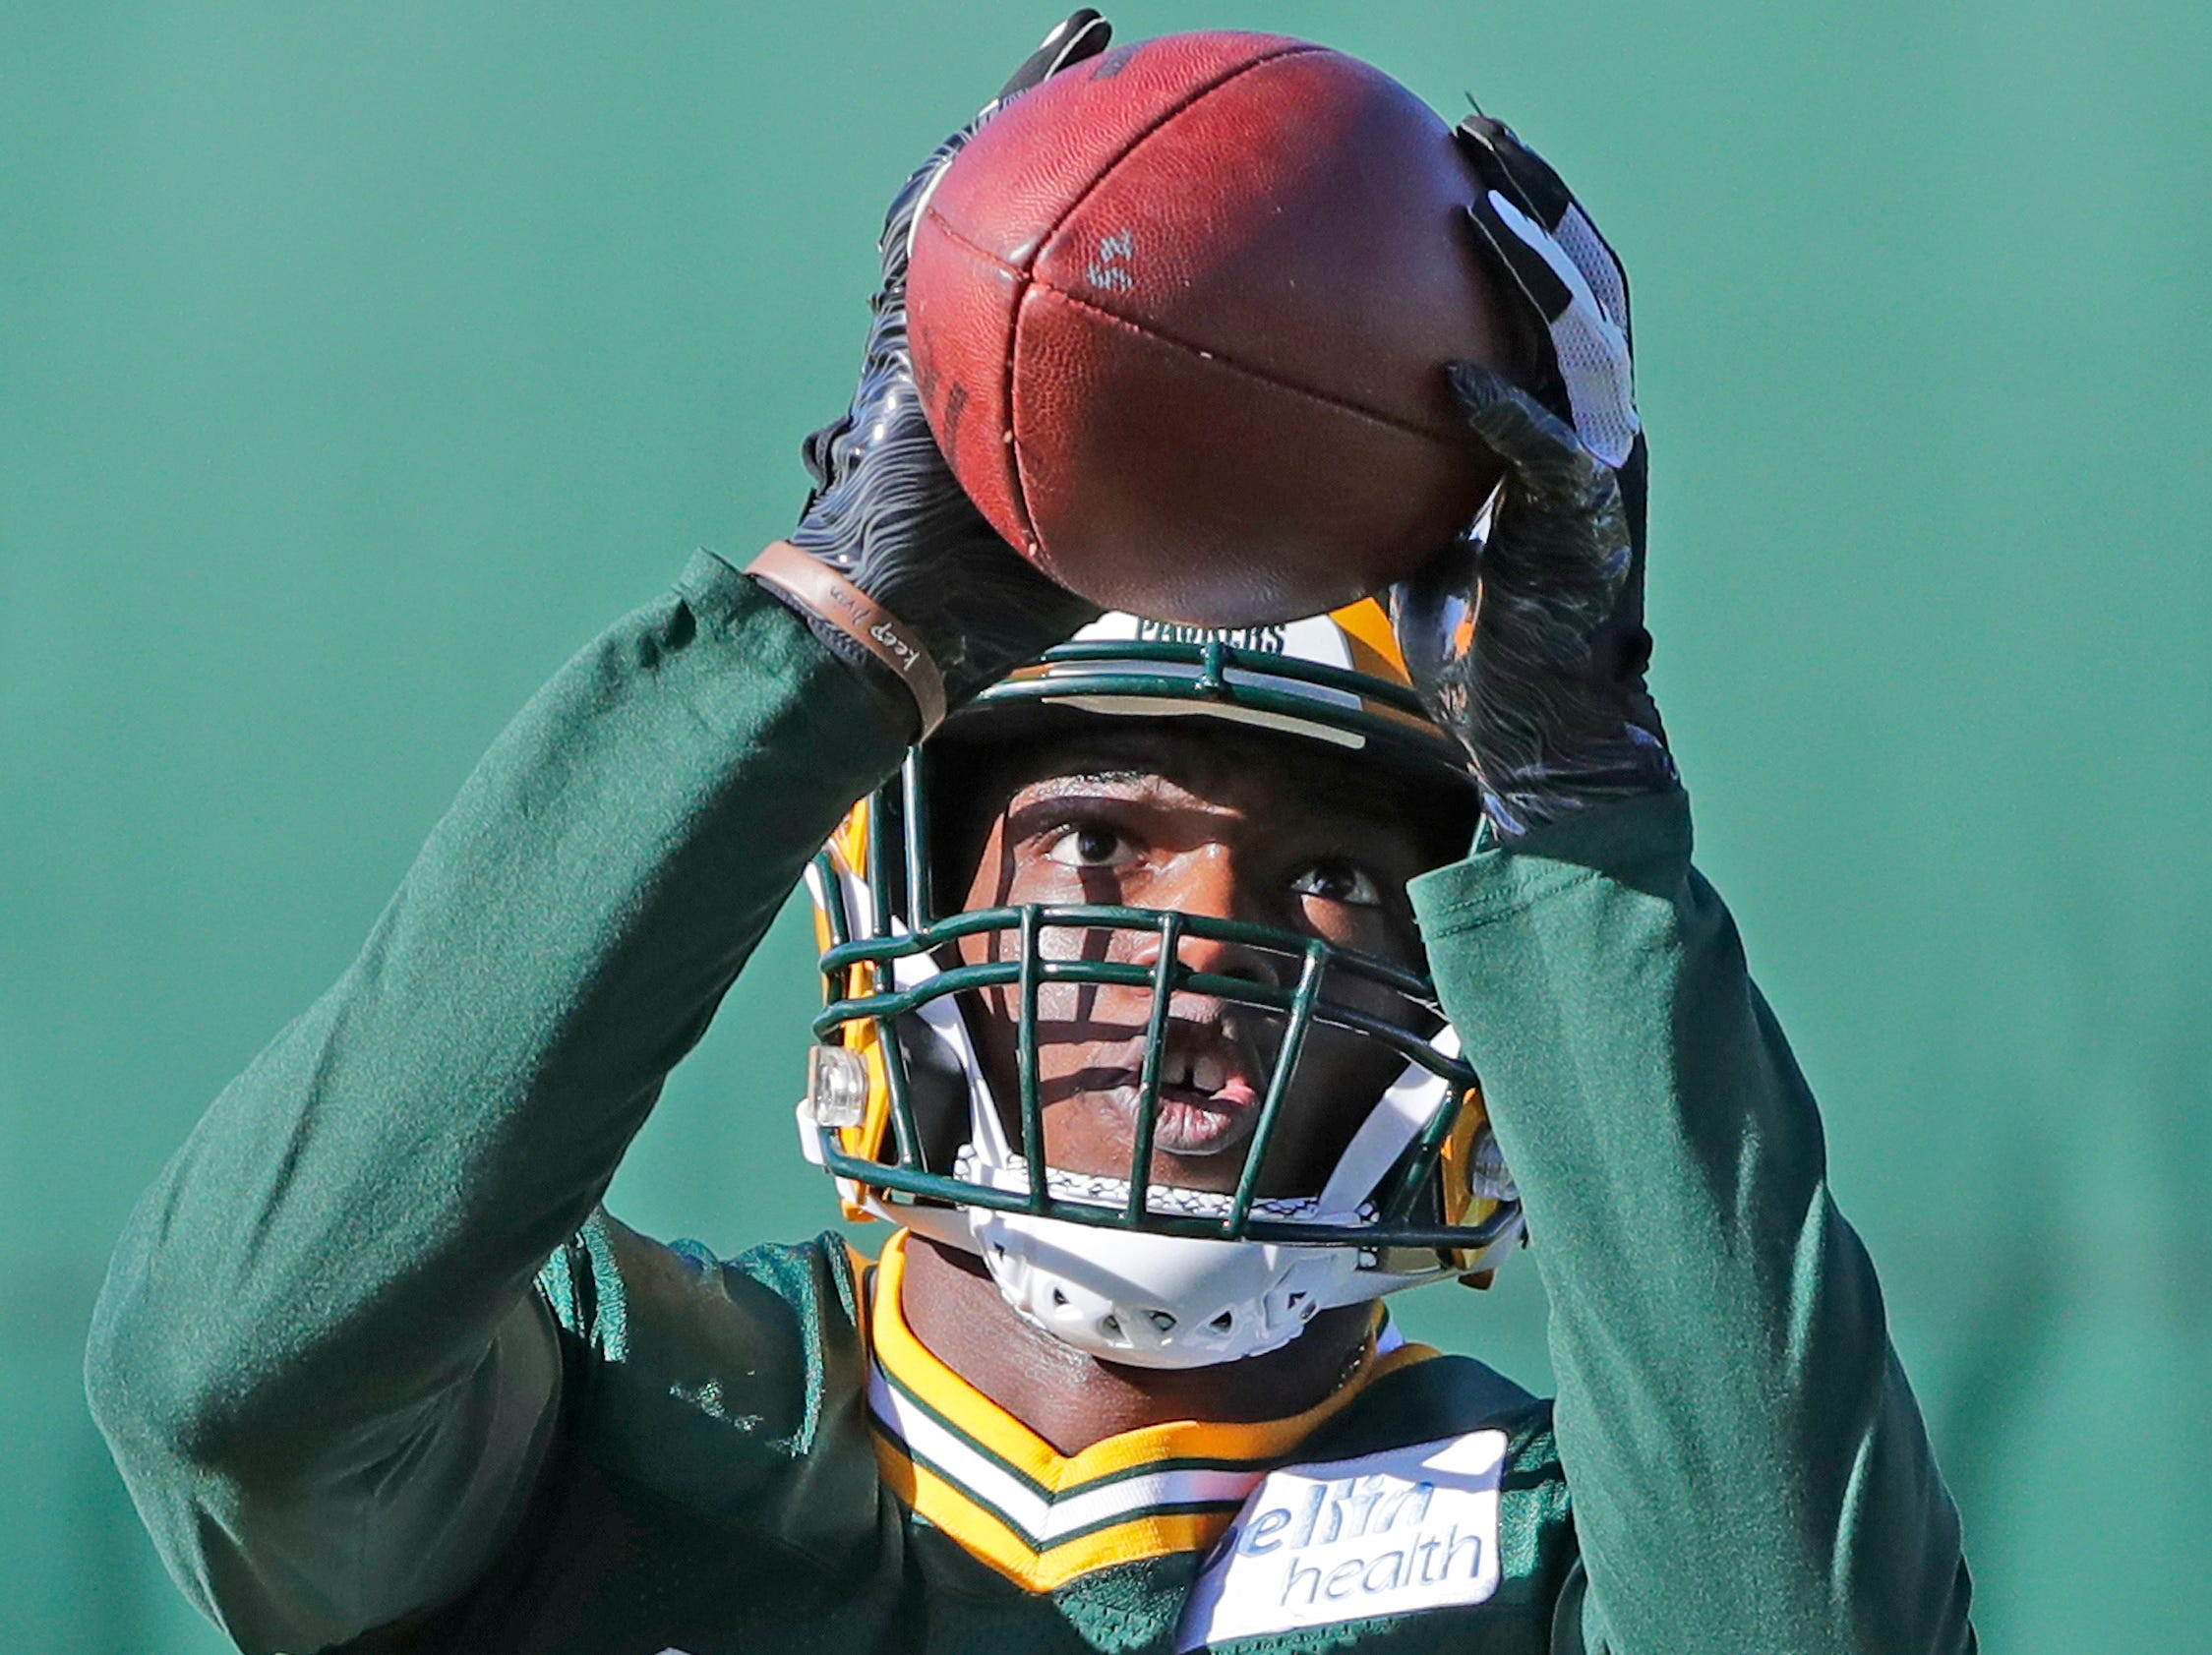 Green Bay Packers cornerback Will Redmond (25) catches during practice at Ray Nitschke Field on Wednesday, October 31, 2018 in Ashwaubenon, Wis.